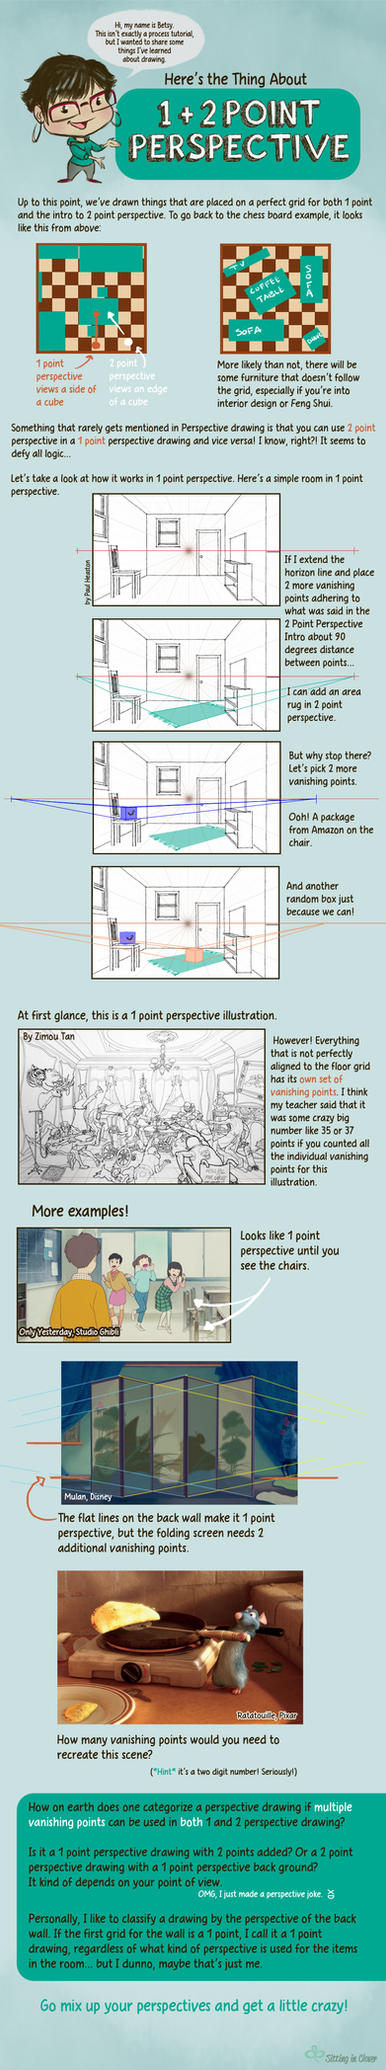 1 + 2 Point Perspective by betsyillustration